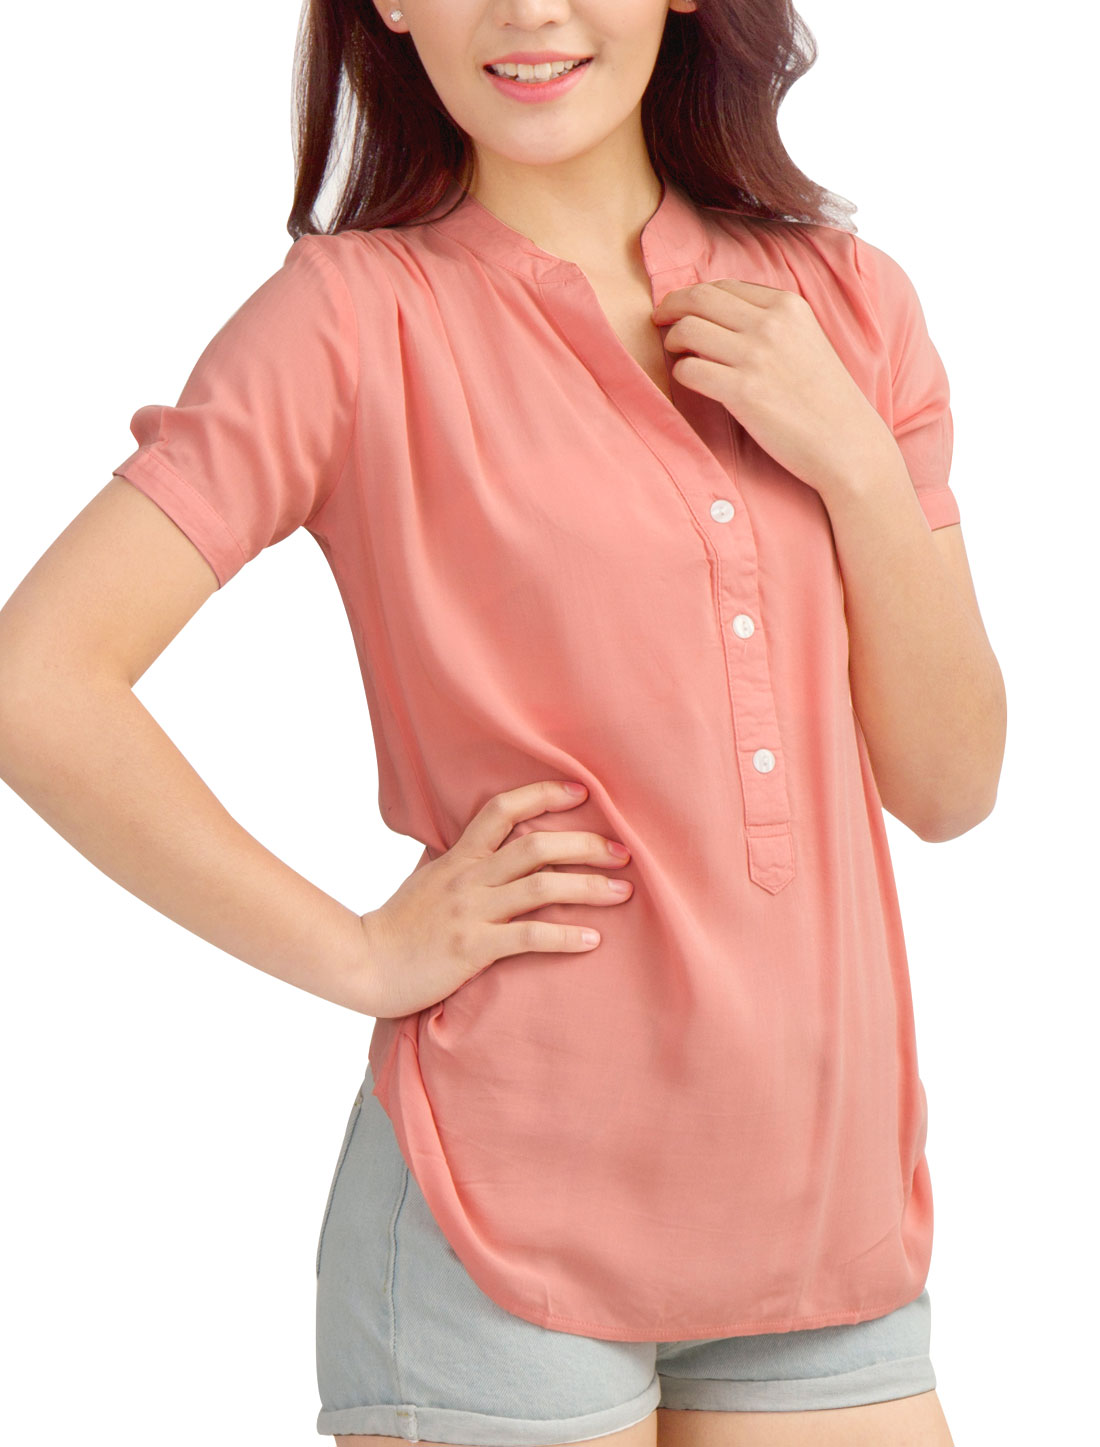 Women Three Buttons Closed Buttons Cuffs Stylish Top Shirt Pink L